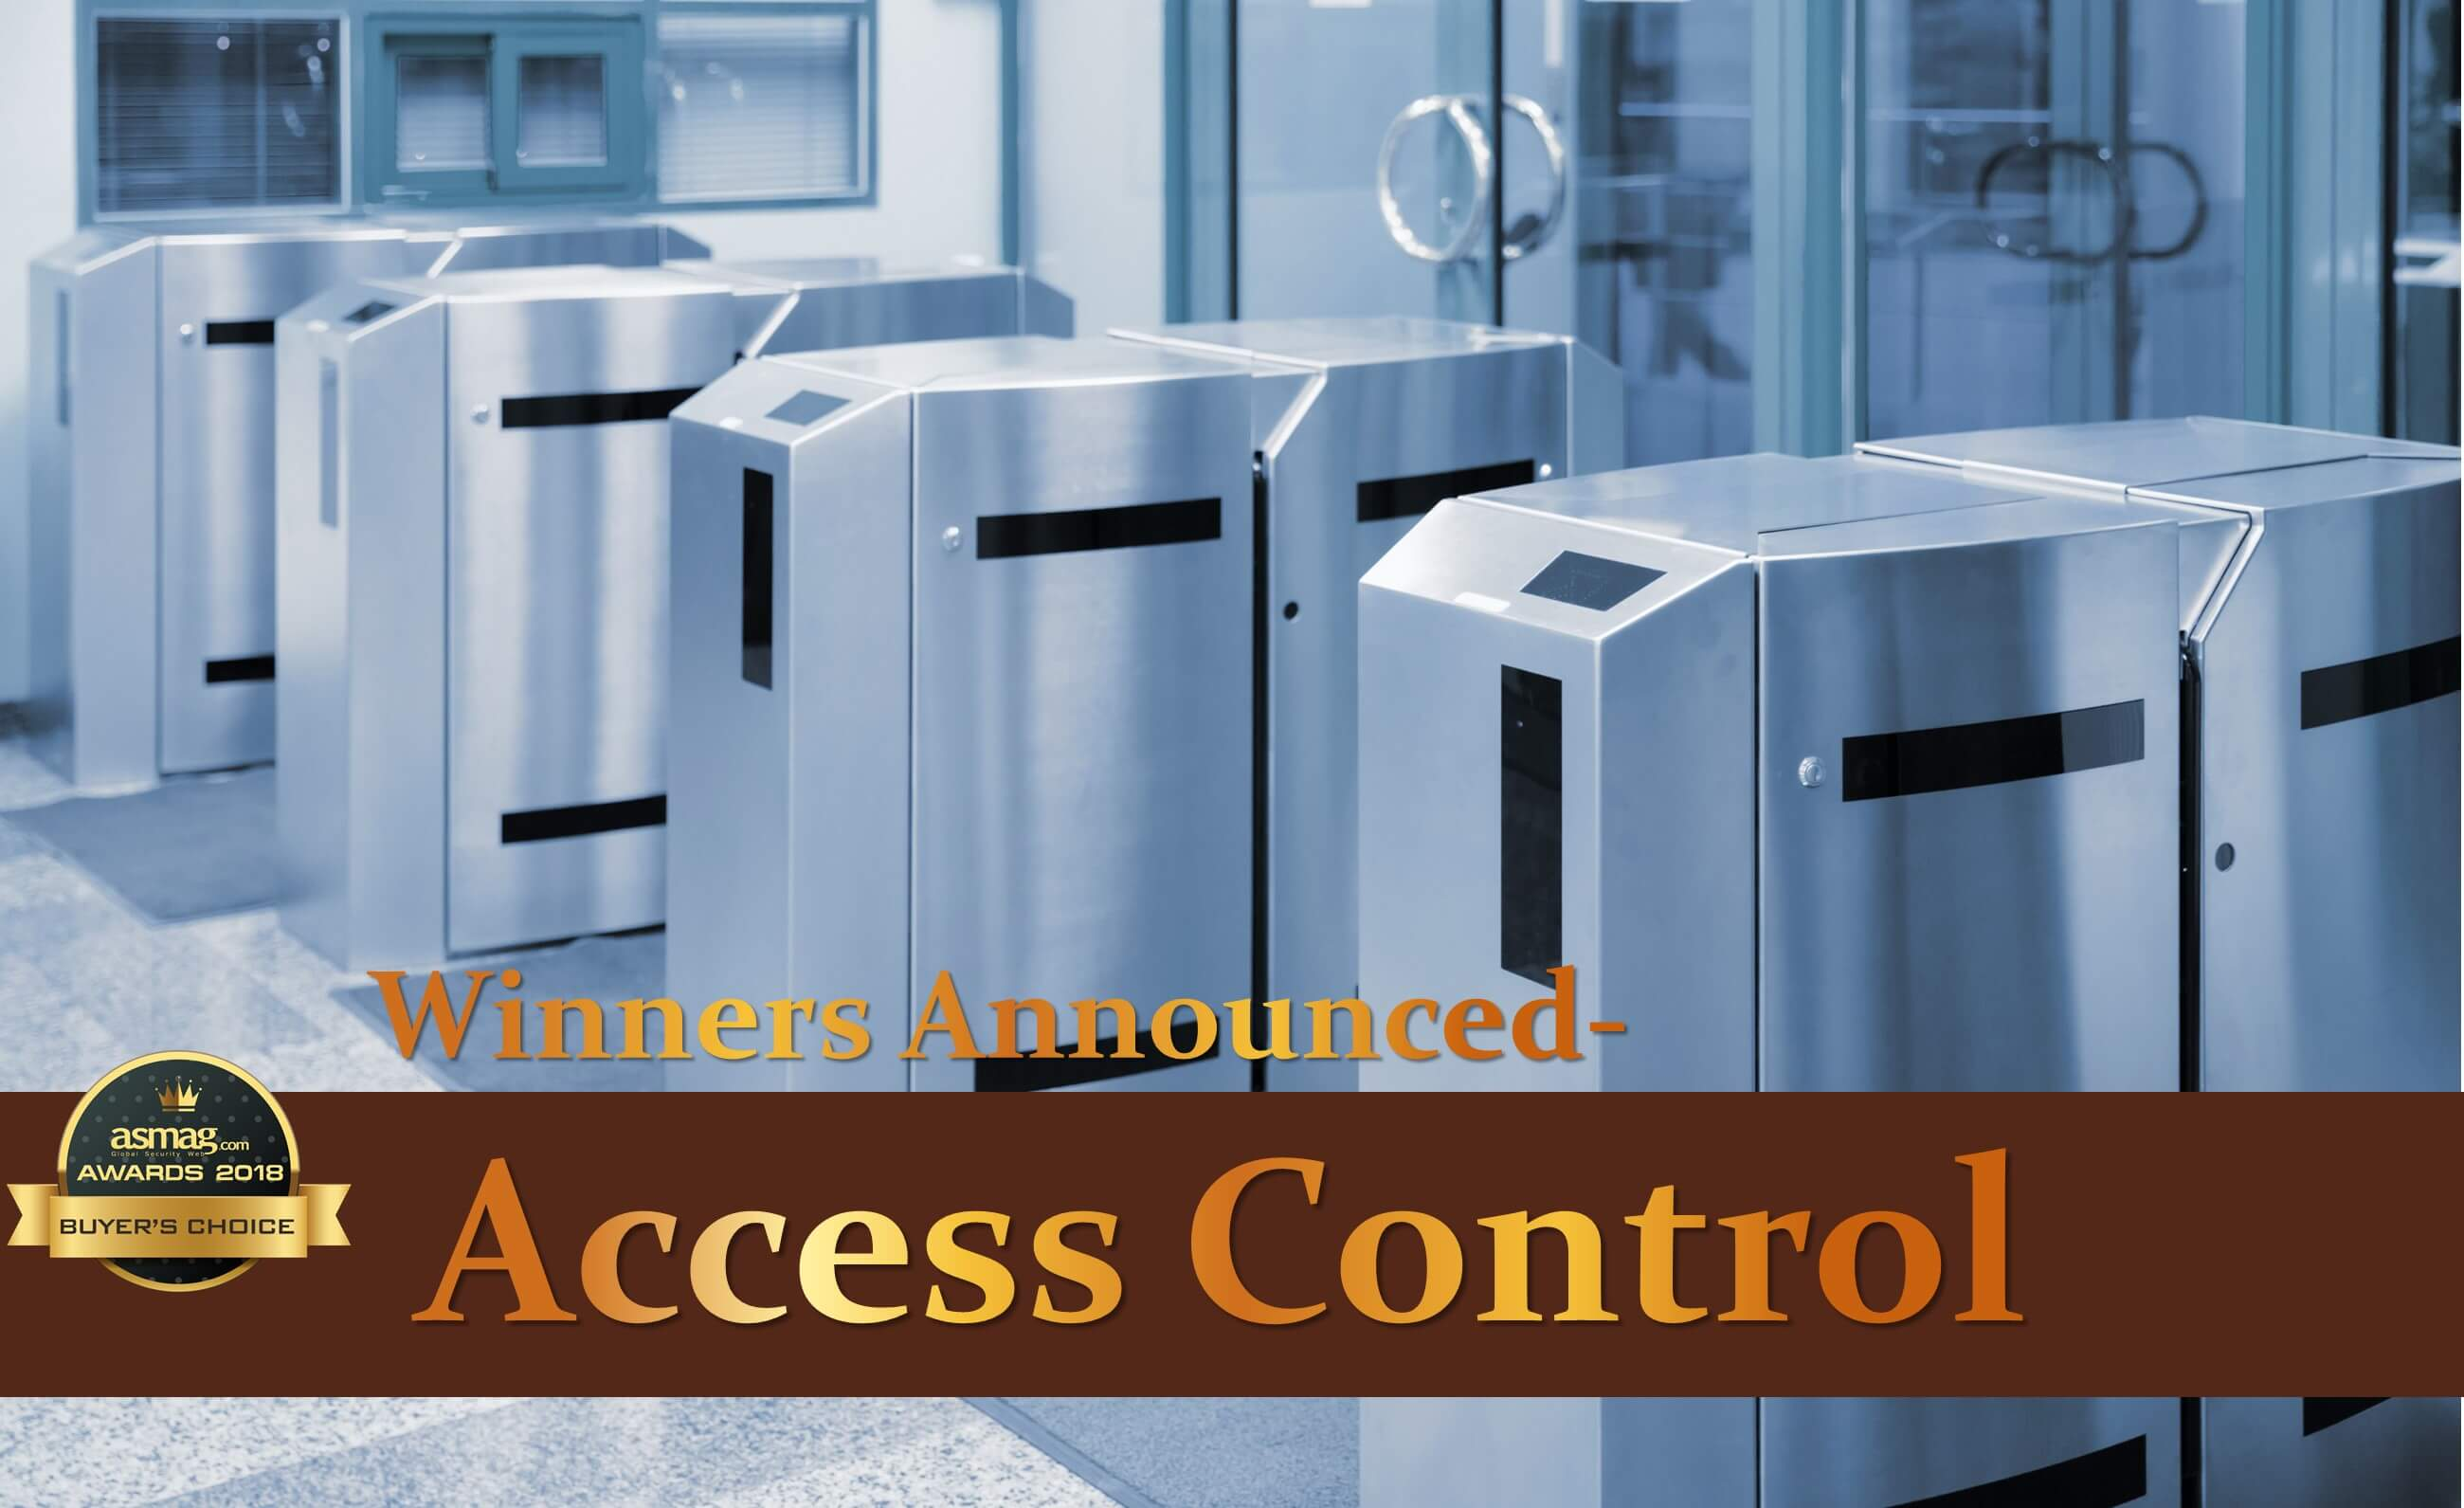 asmag.com 2018 Buyers' Choice Awards: Access Control winners